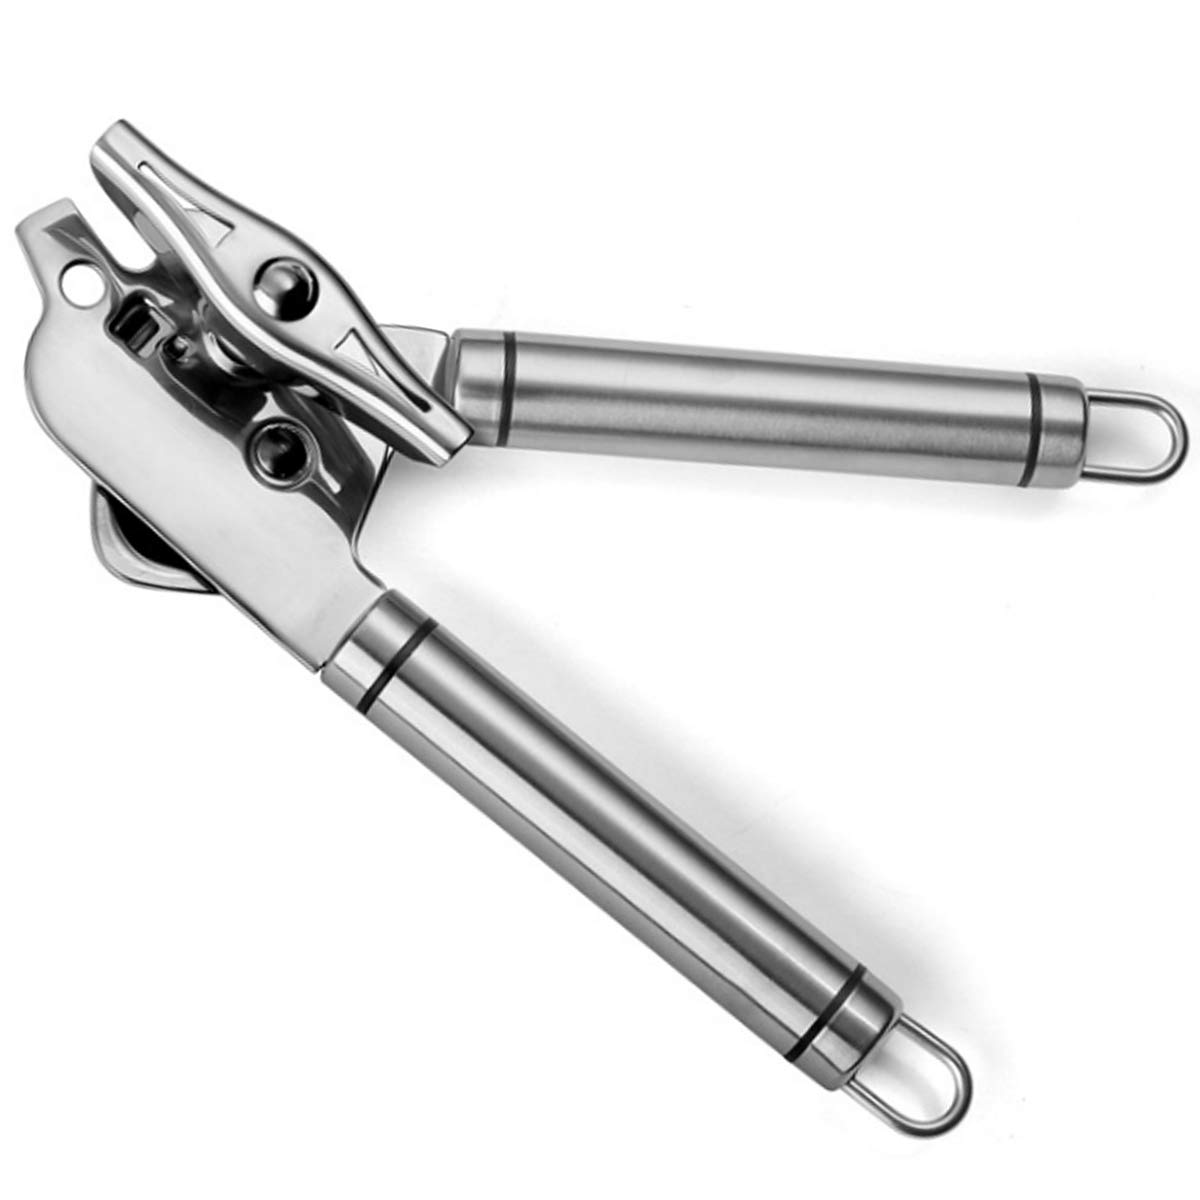 Professional 304 Stainless Steel Can Opener Manual for Seniors With Arthritis Jar Opener and Bottle Opener,Heavy Duty Can Openers Smooth Edge,Hand Can Opener Dishwasher Safe.